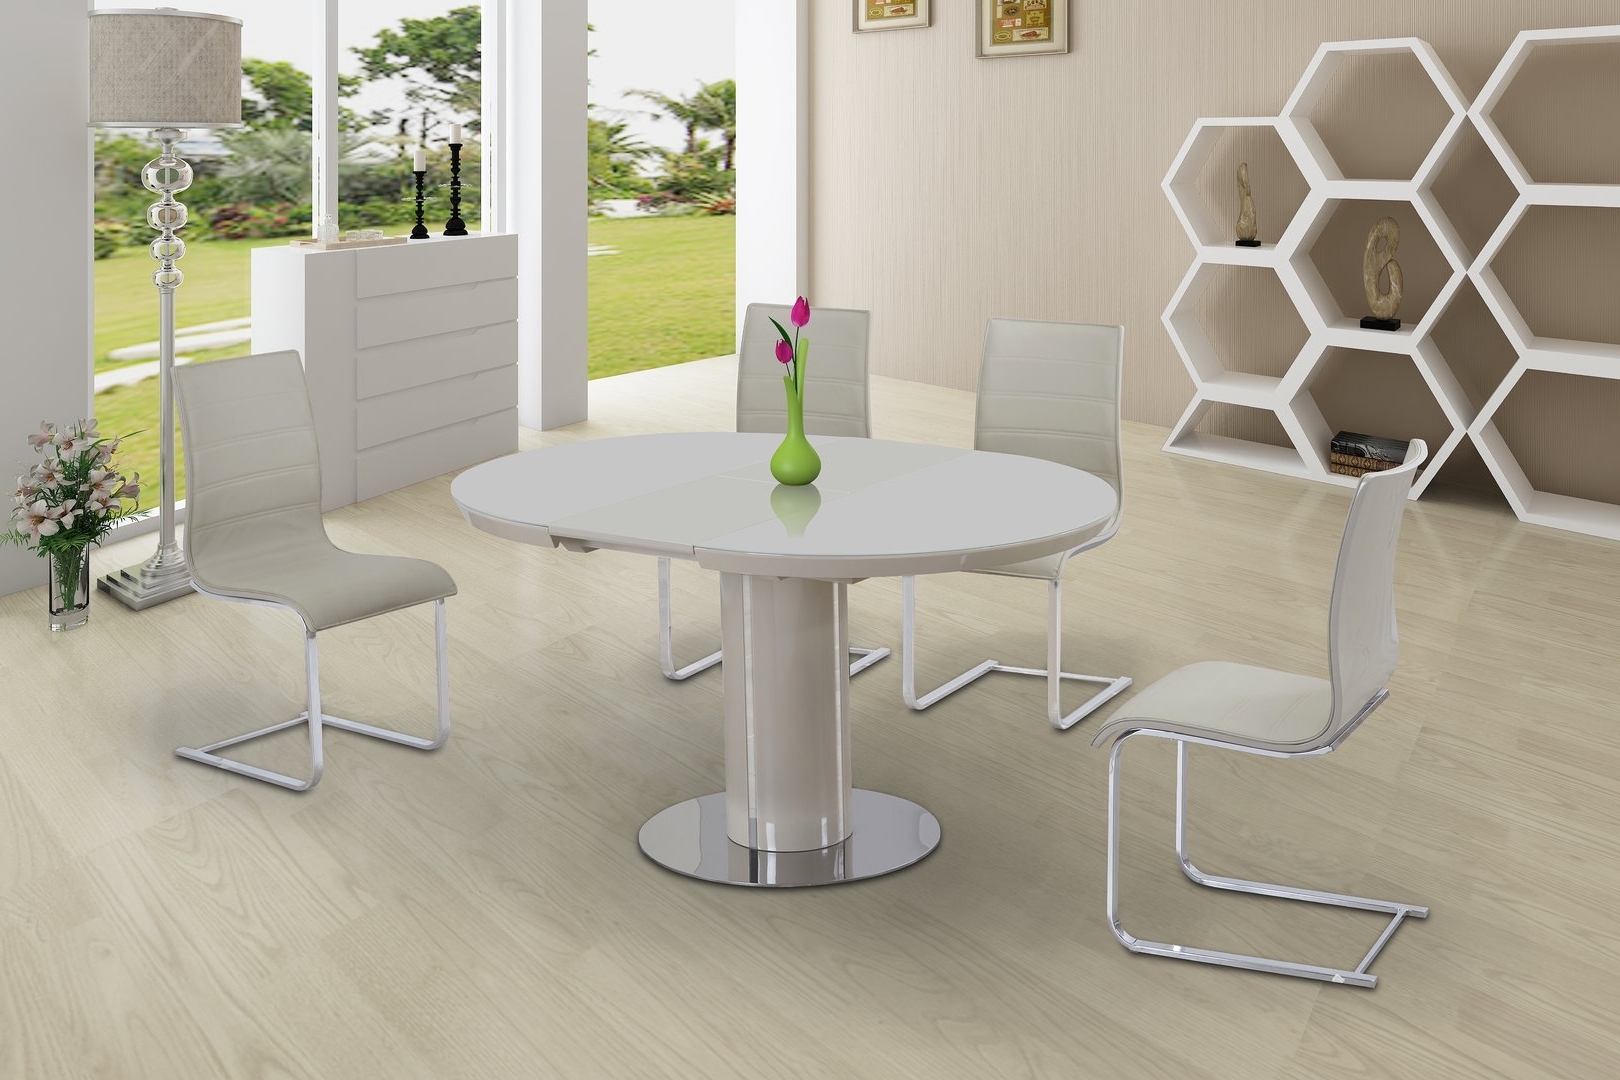 Famous Gloss Dining Tables And Chairs Regarding Round Cream Glass High Gloss Dining Table & 4 Chairs – Homegenies (View 3 of 25)